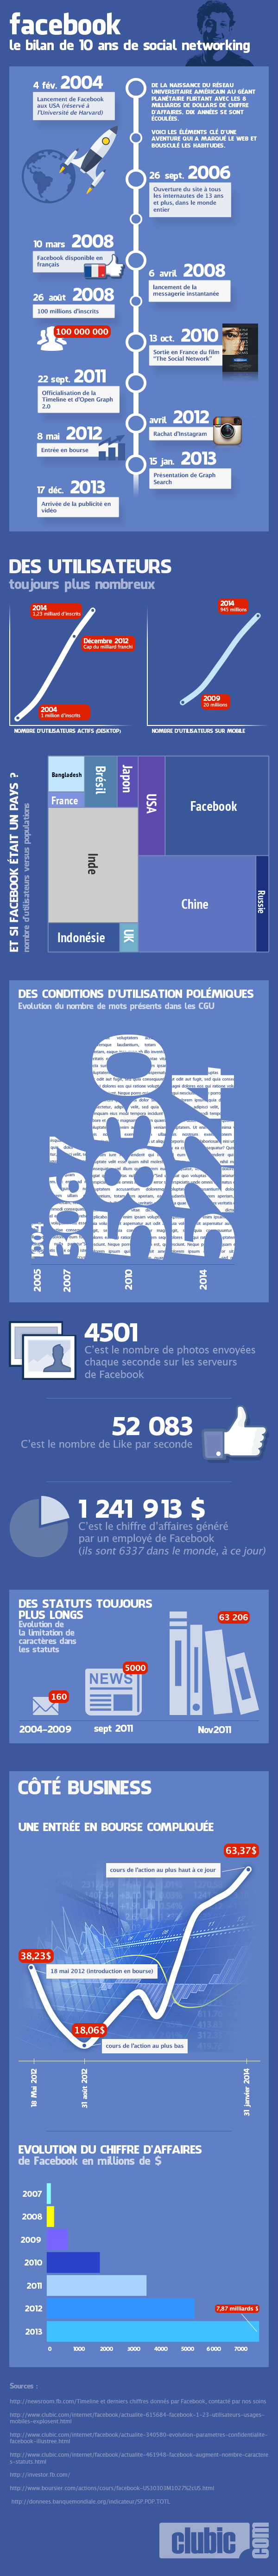 infographie-10-ans-facebook